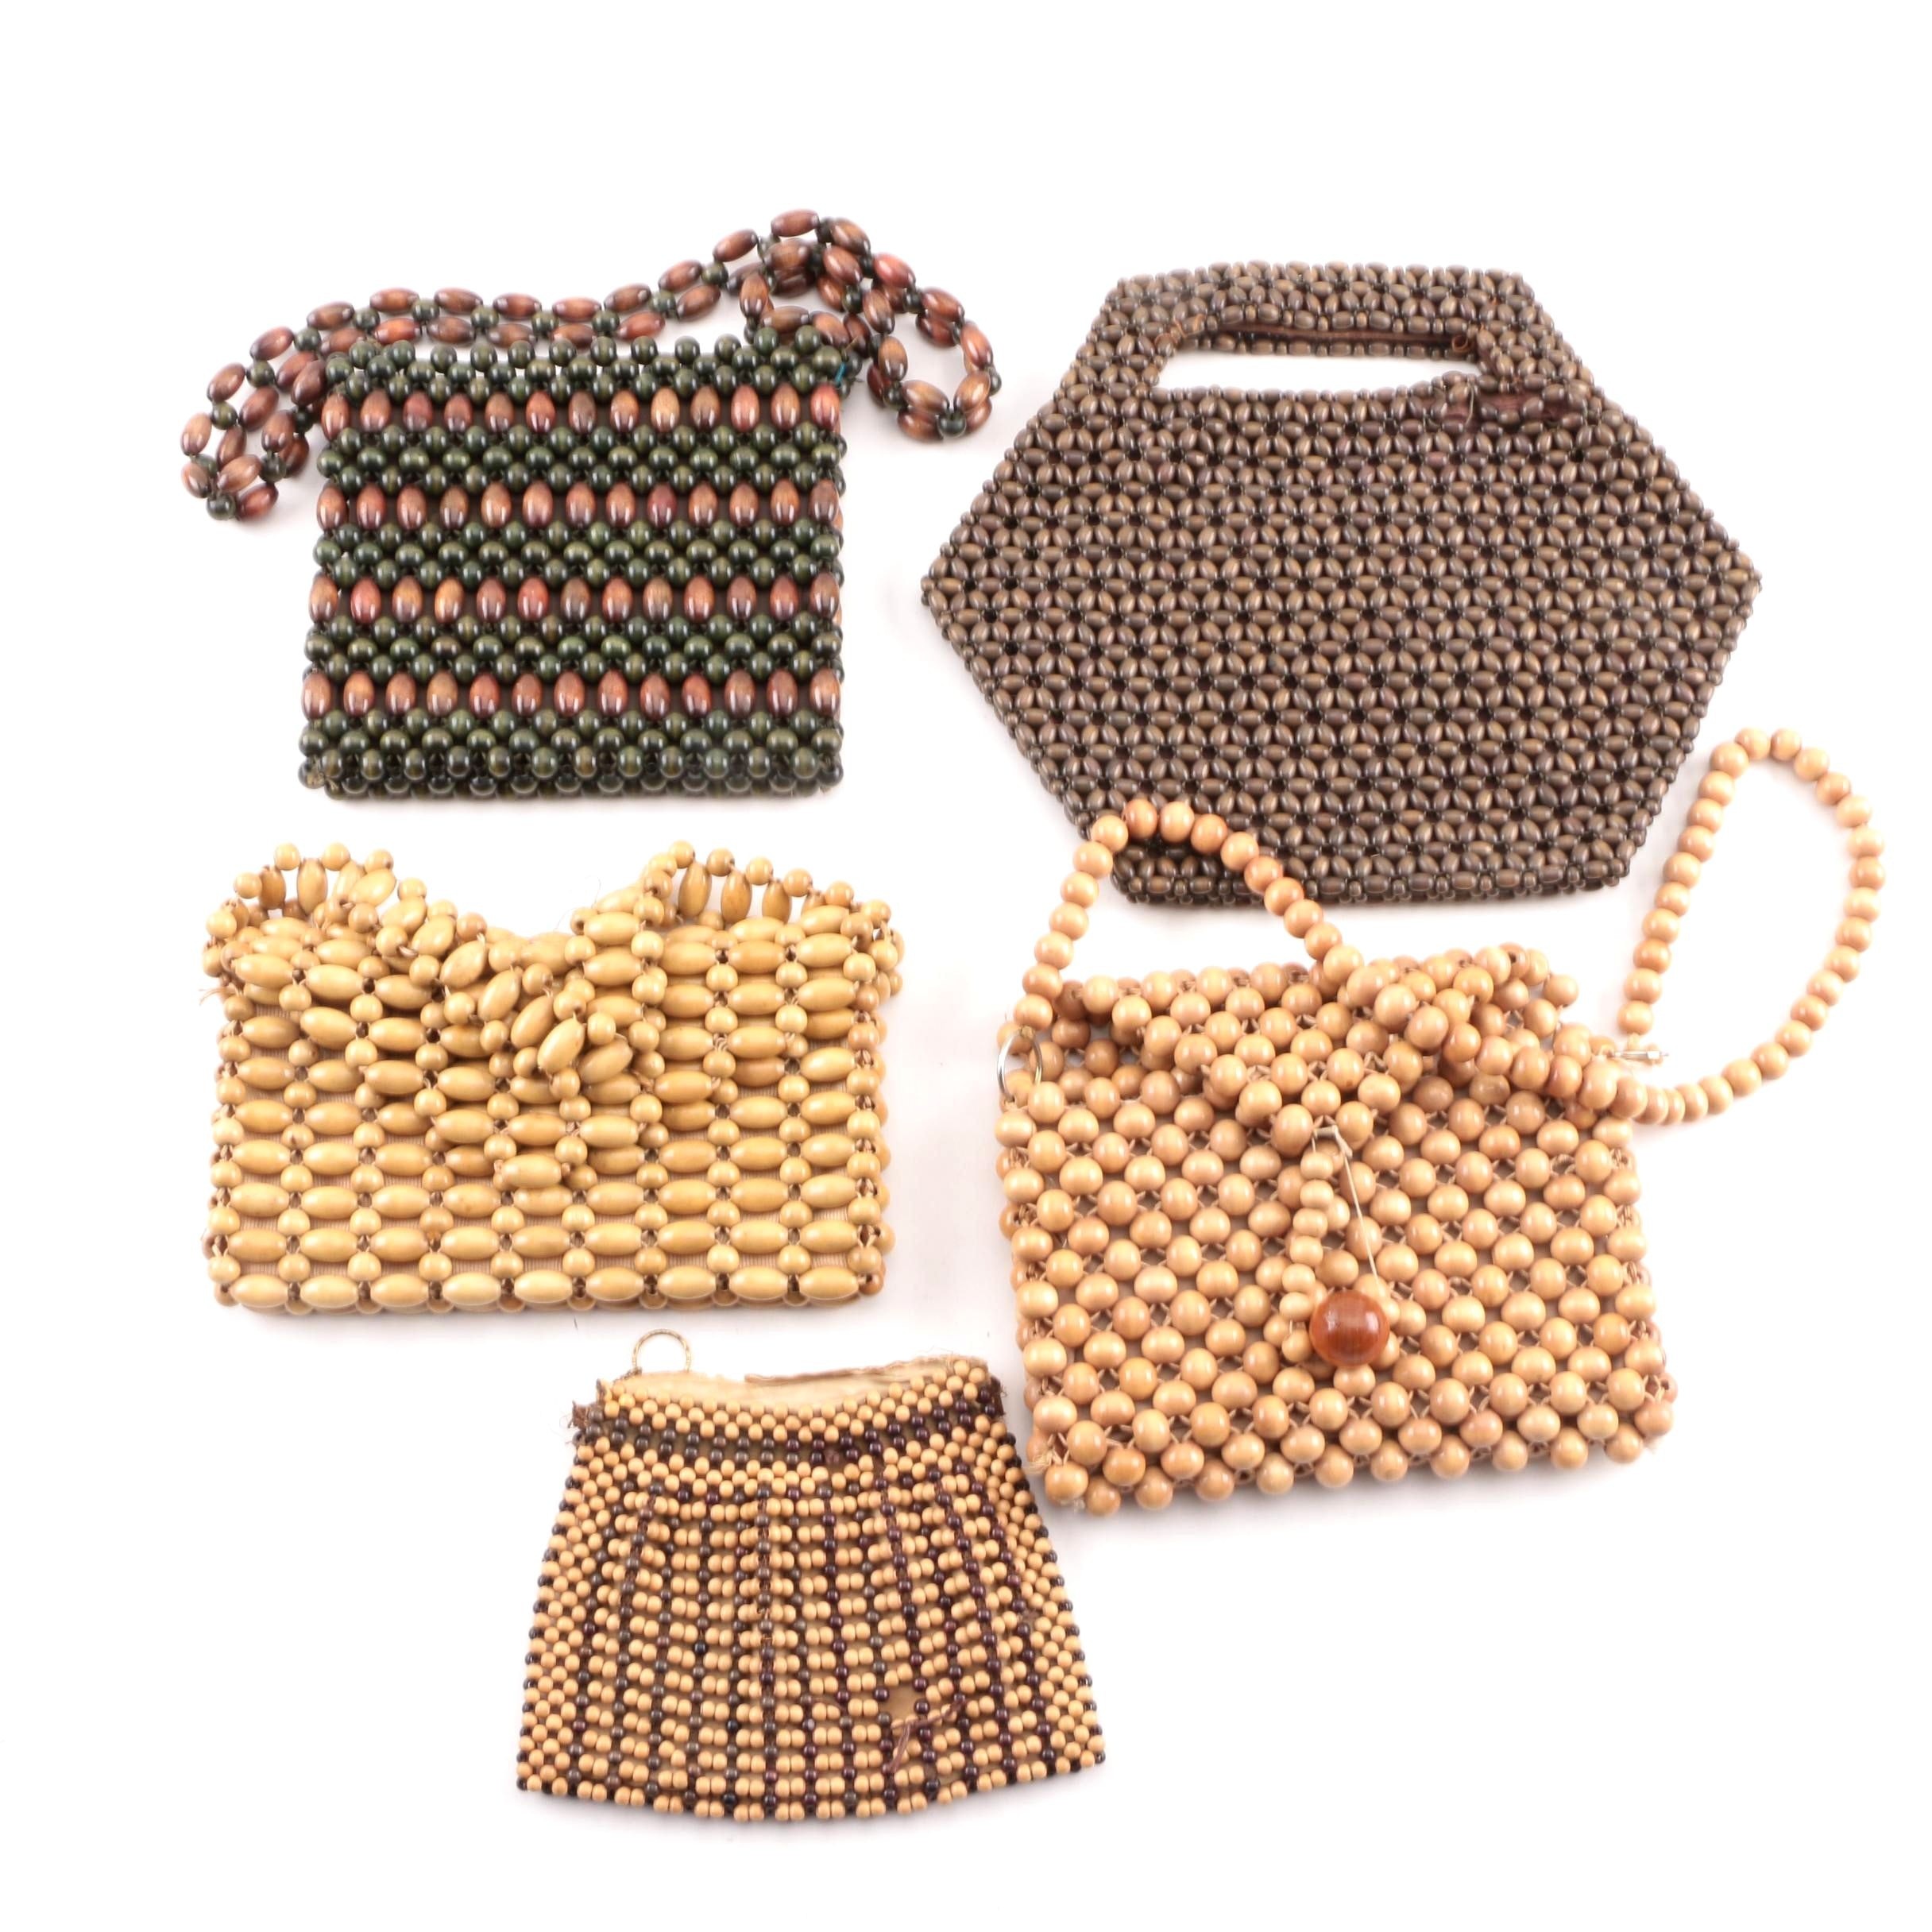 Vintage Wooden Beaded Clutch and Handbags